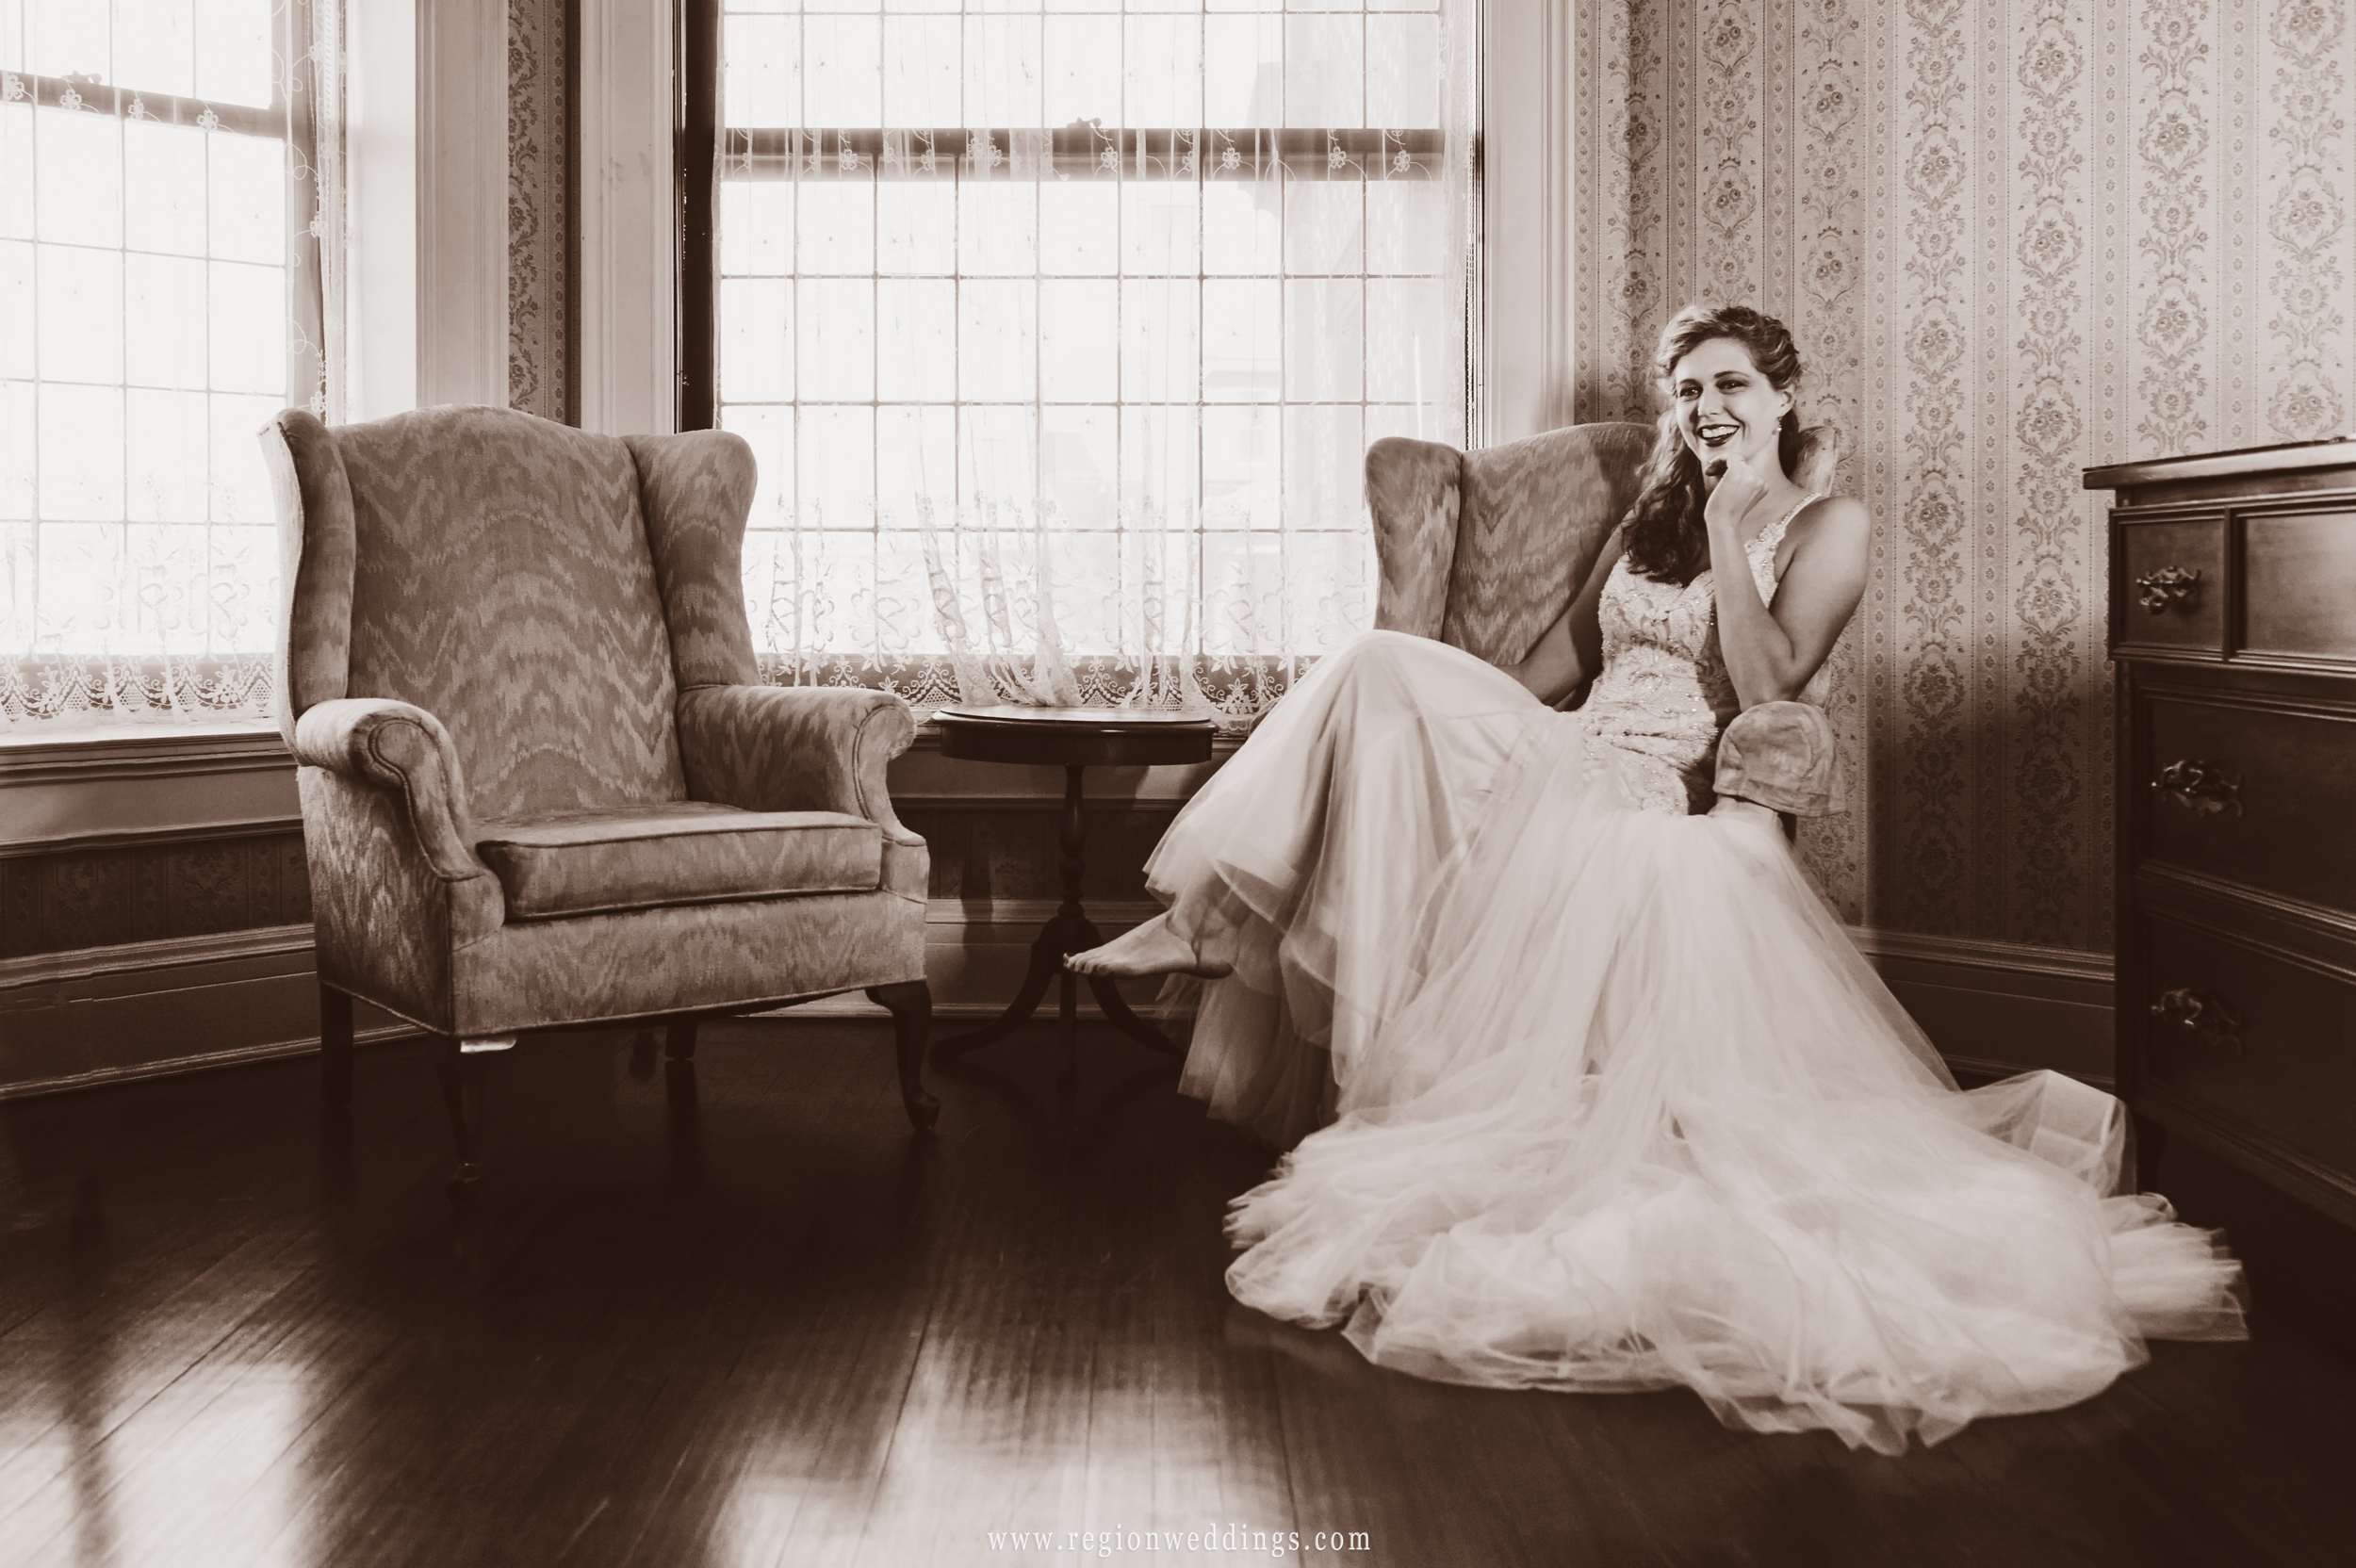 Barefoot and laughing inside the bridal suite at Barker Mansion.